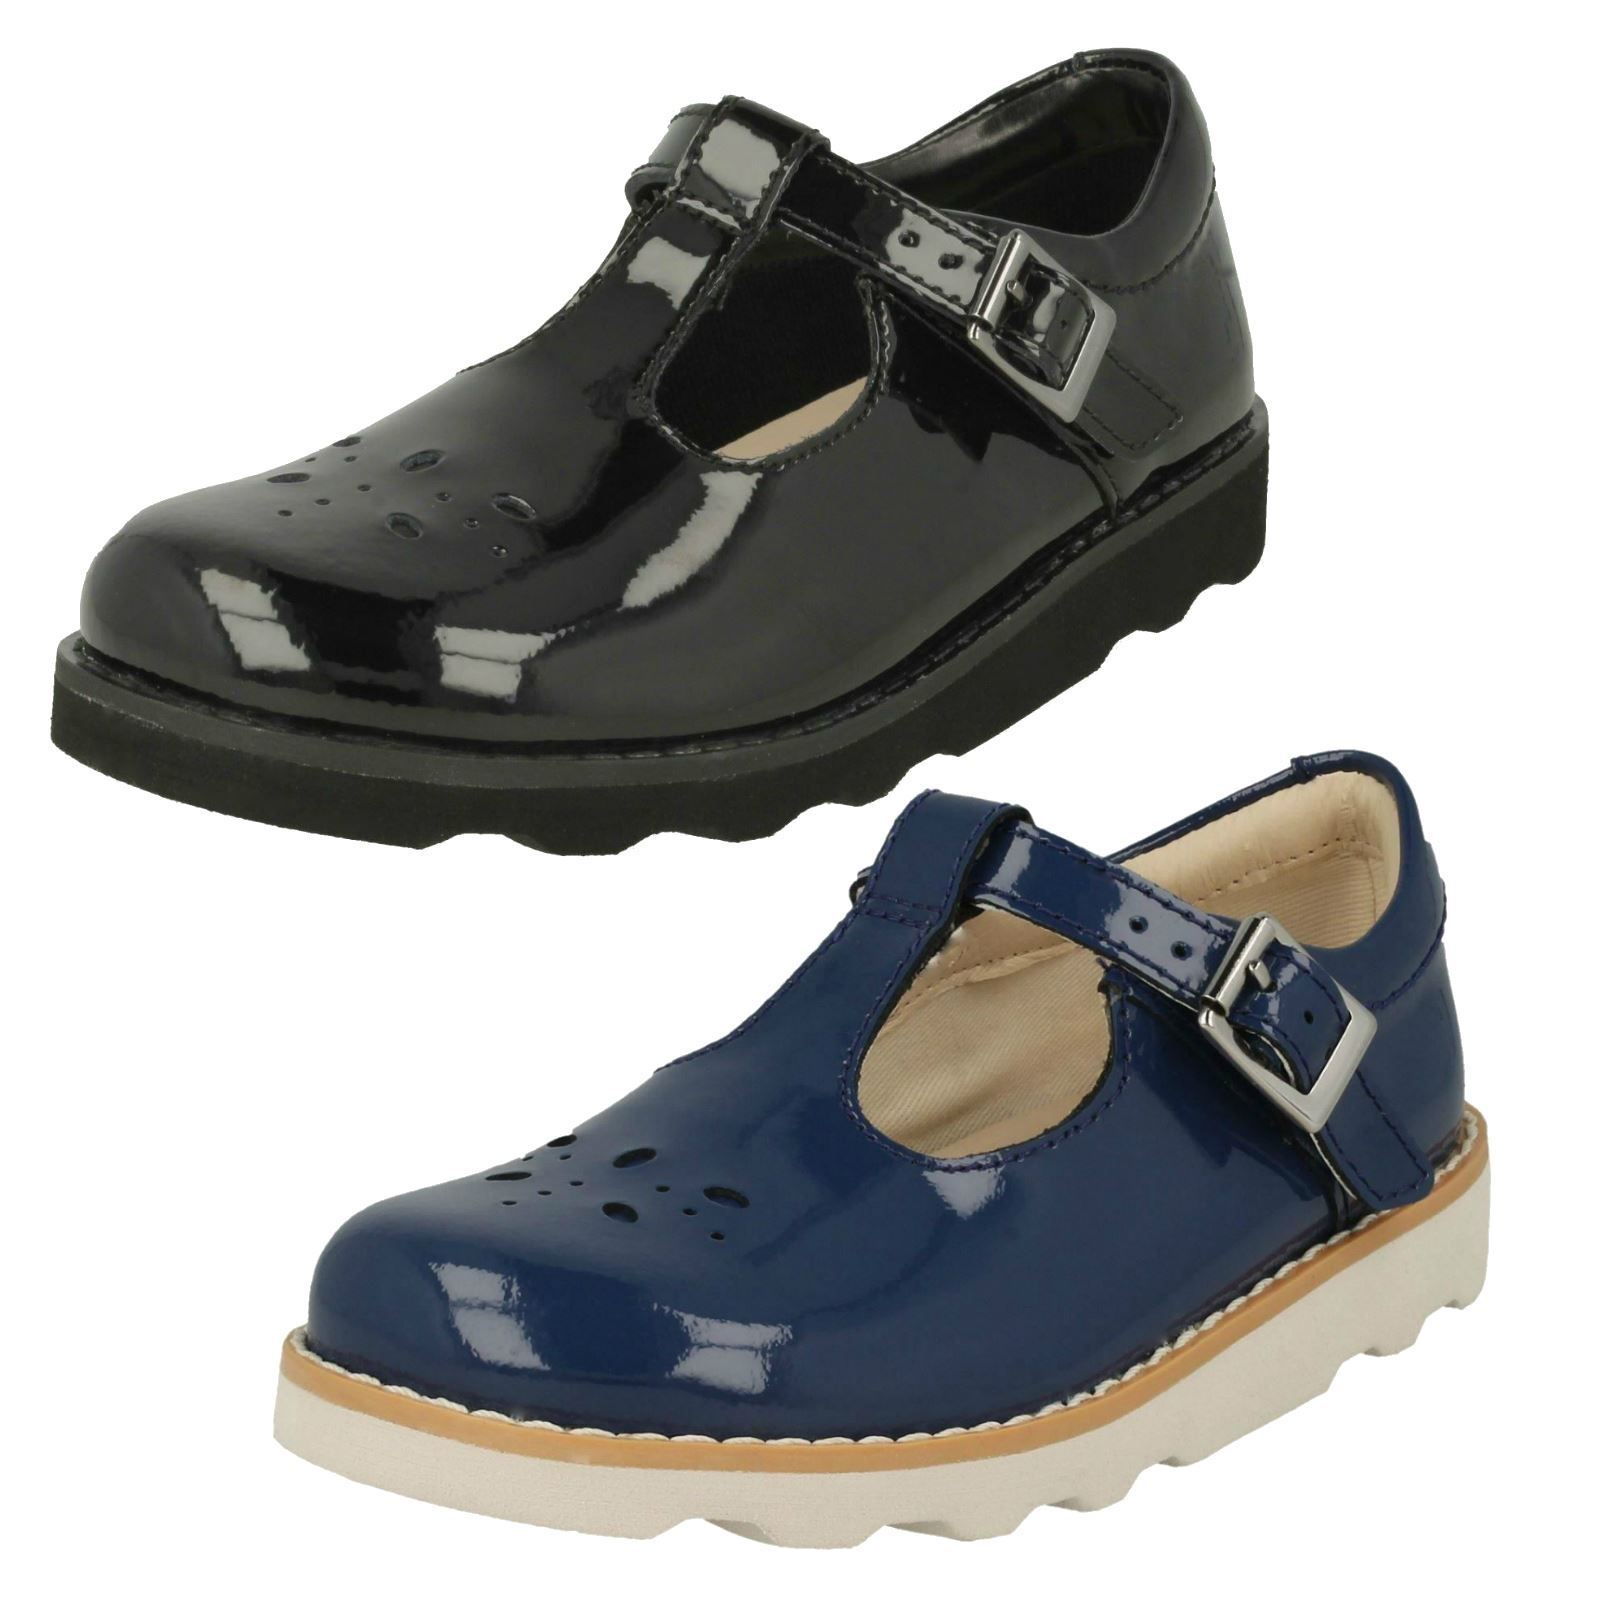 Girls Clarks Crown Wish Classic T-Bar Shoes